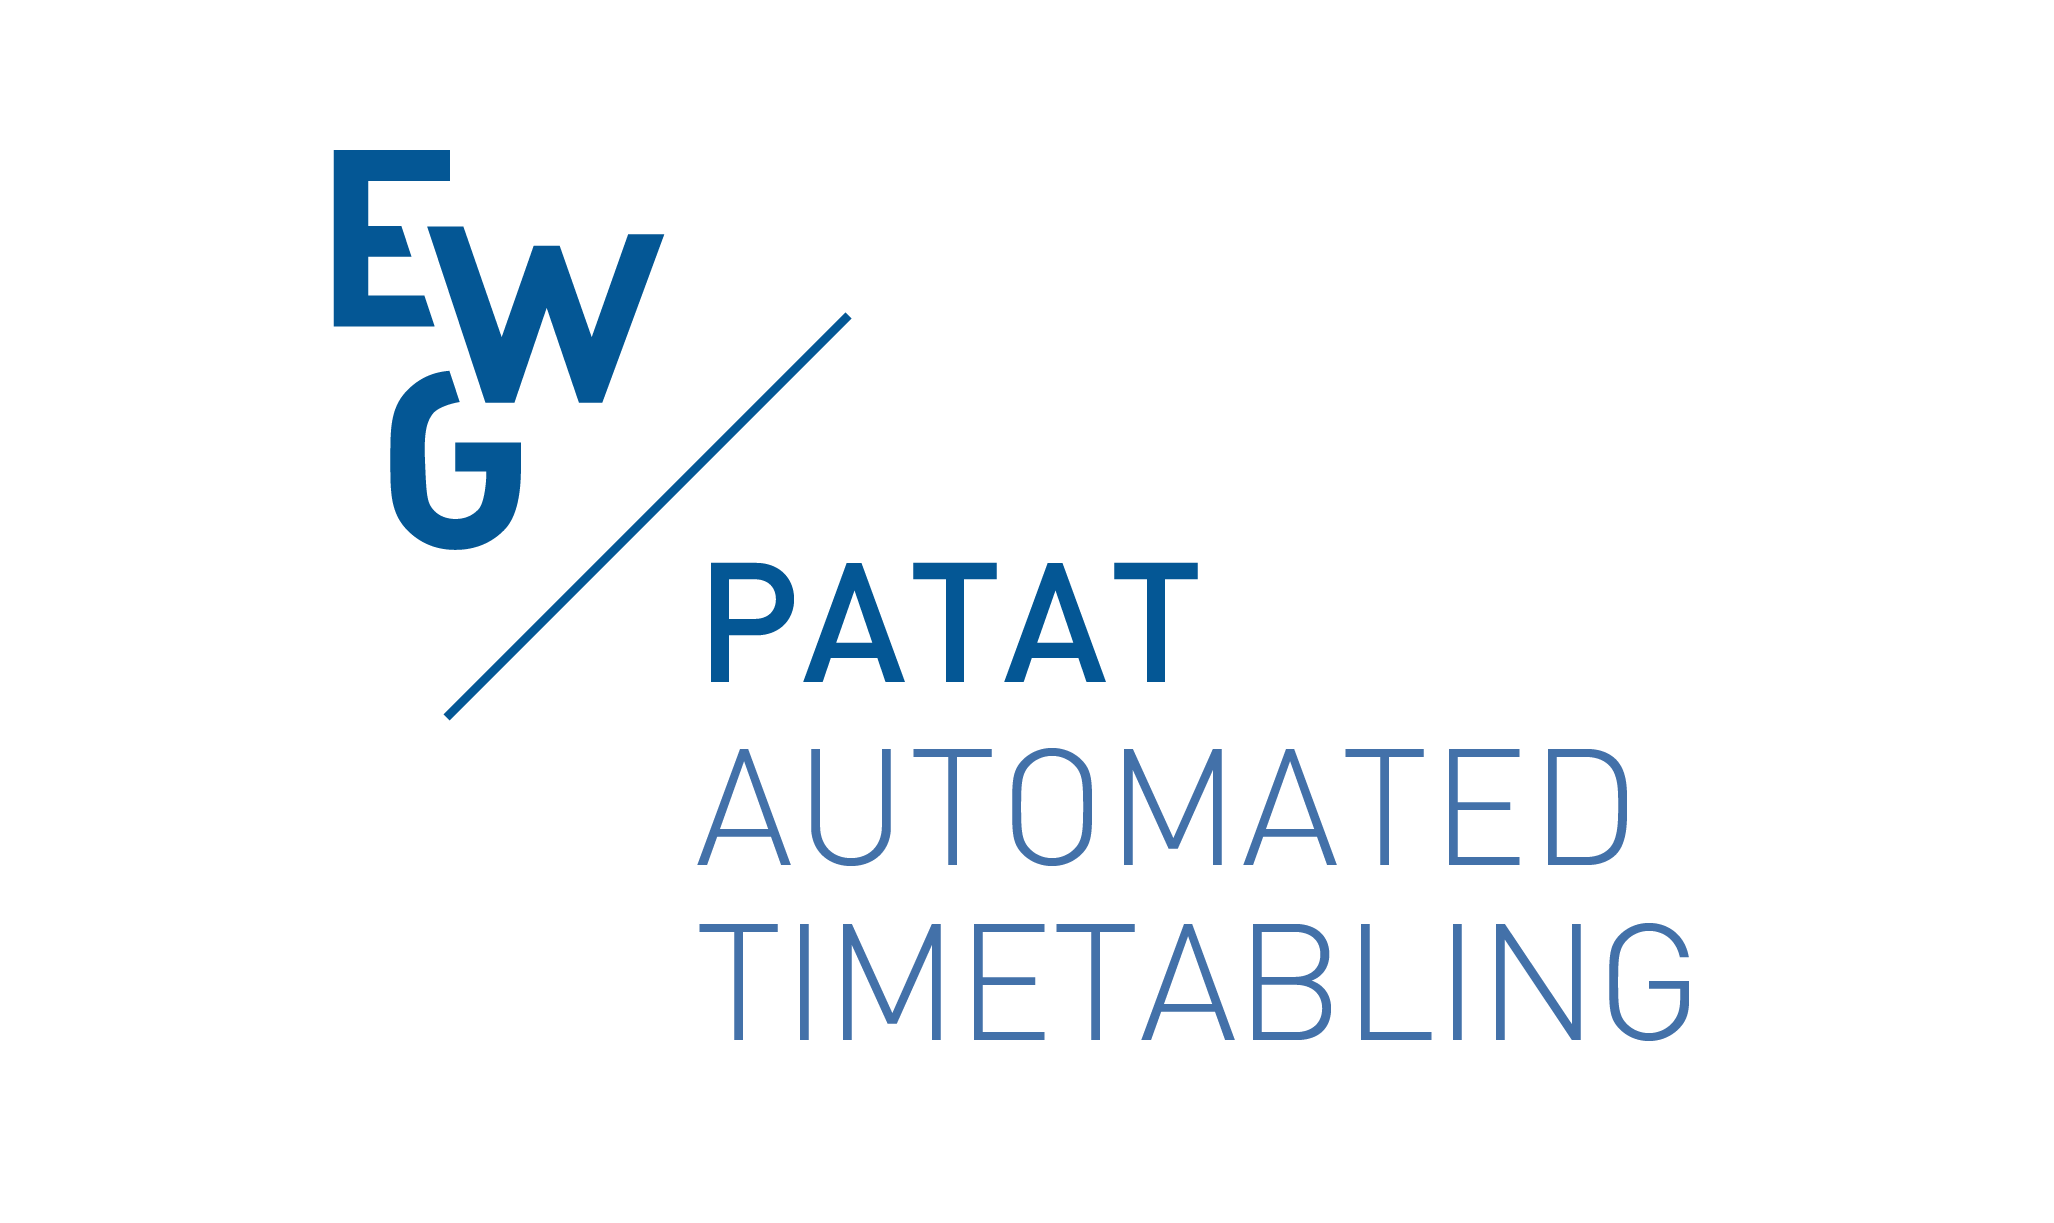 EWG PATAT, EURO working group on Automated Timetabling